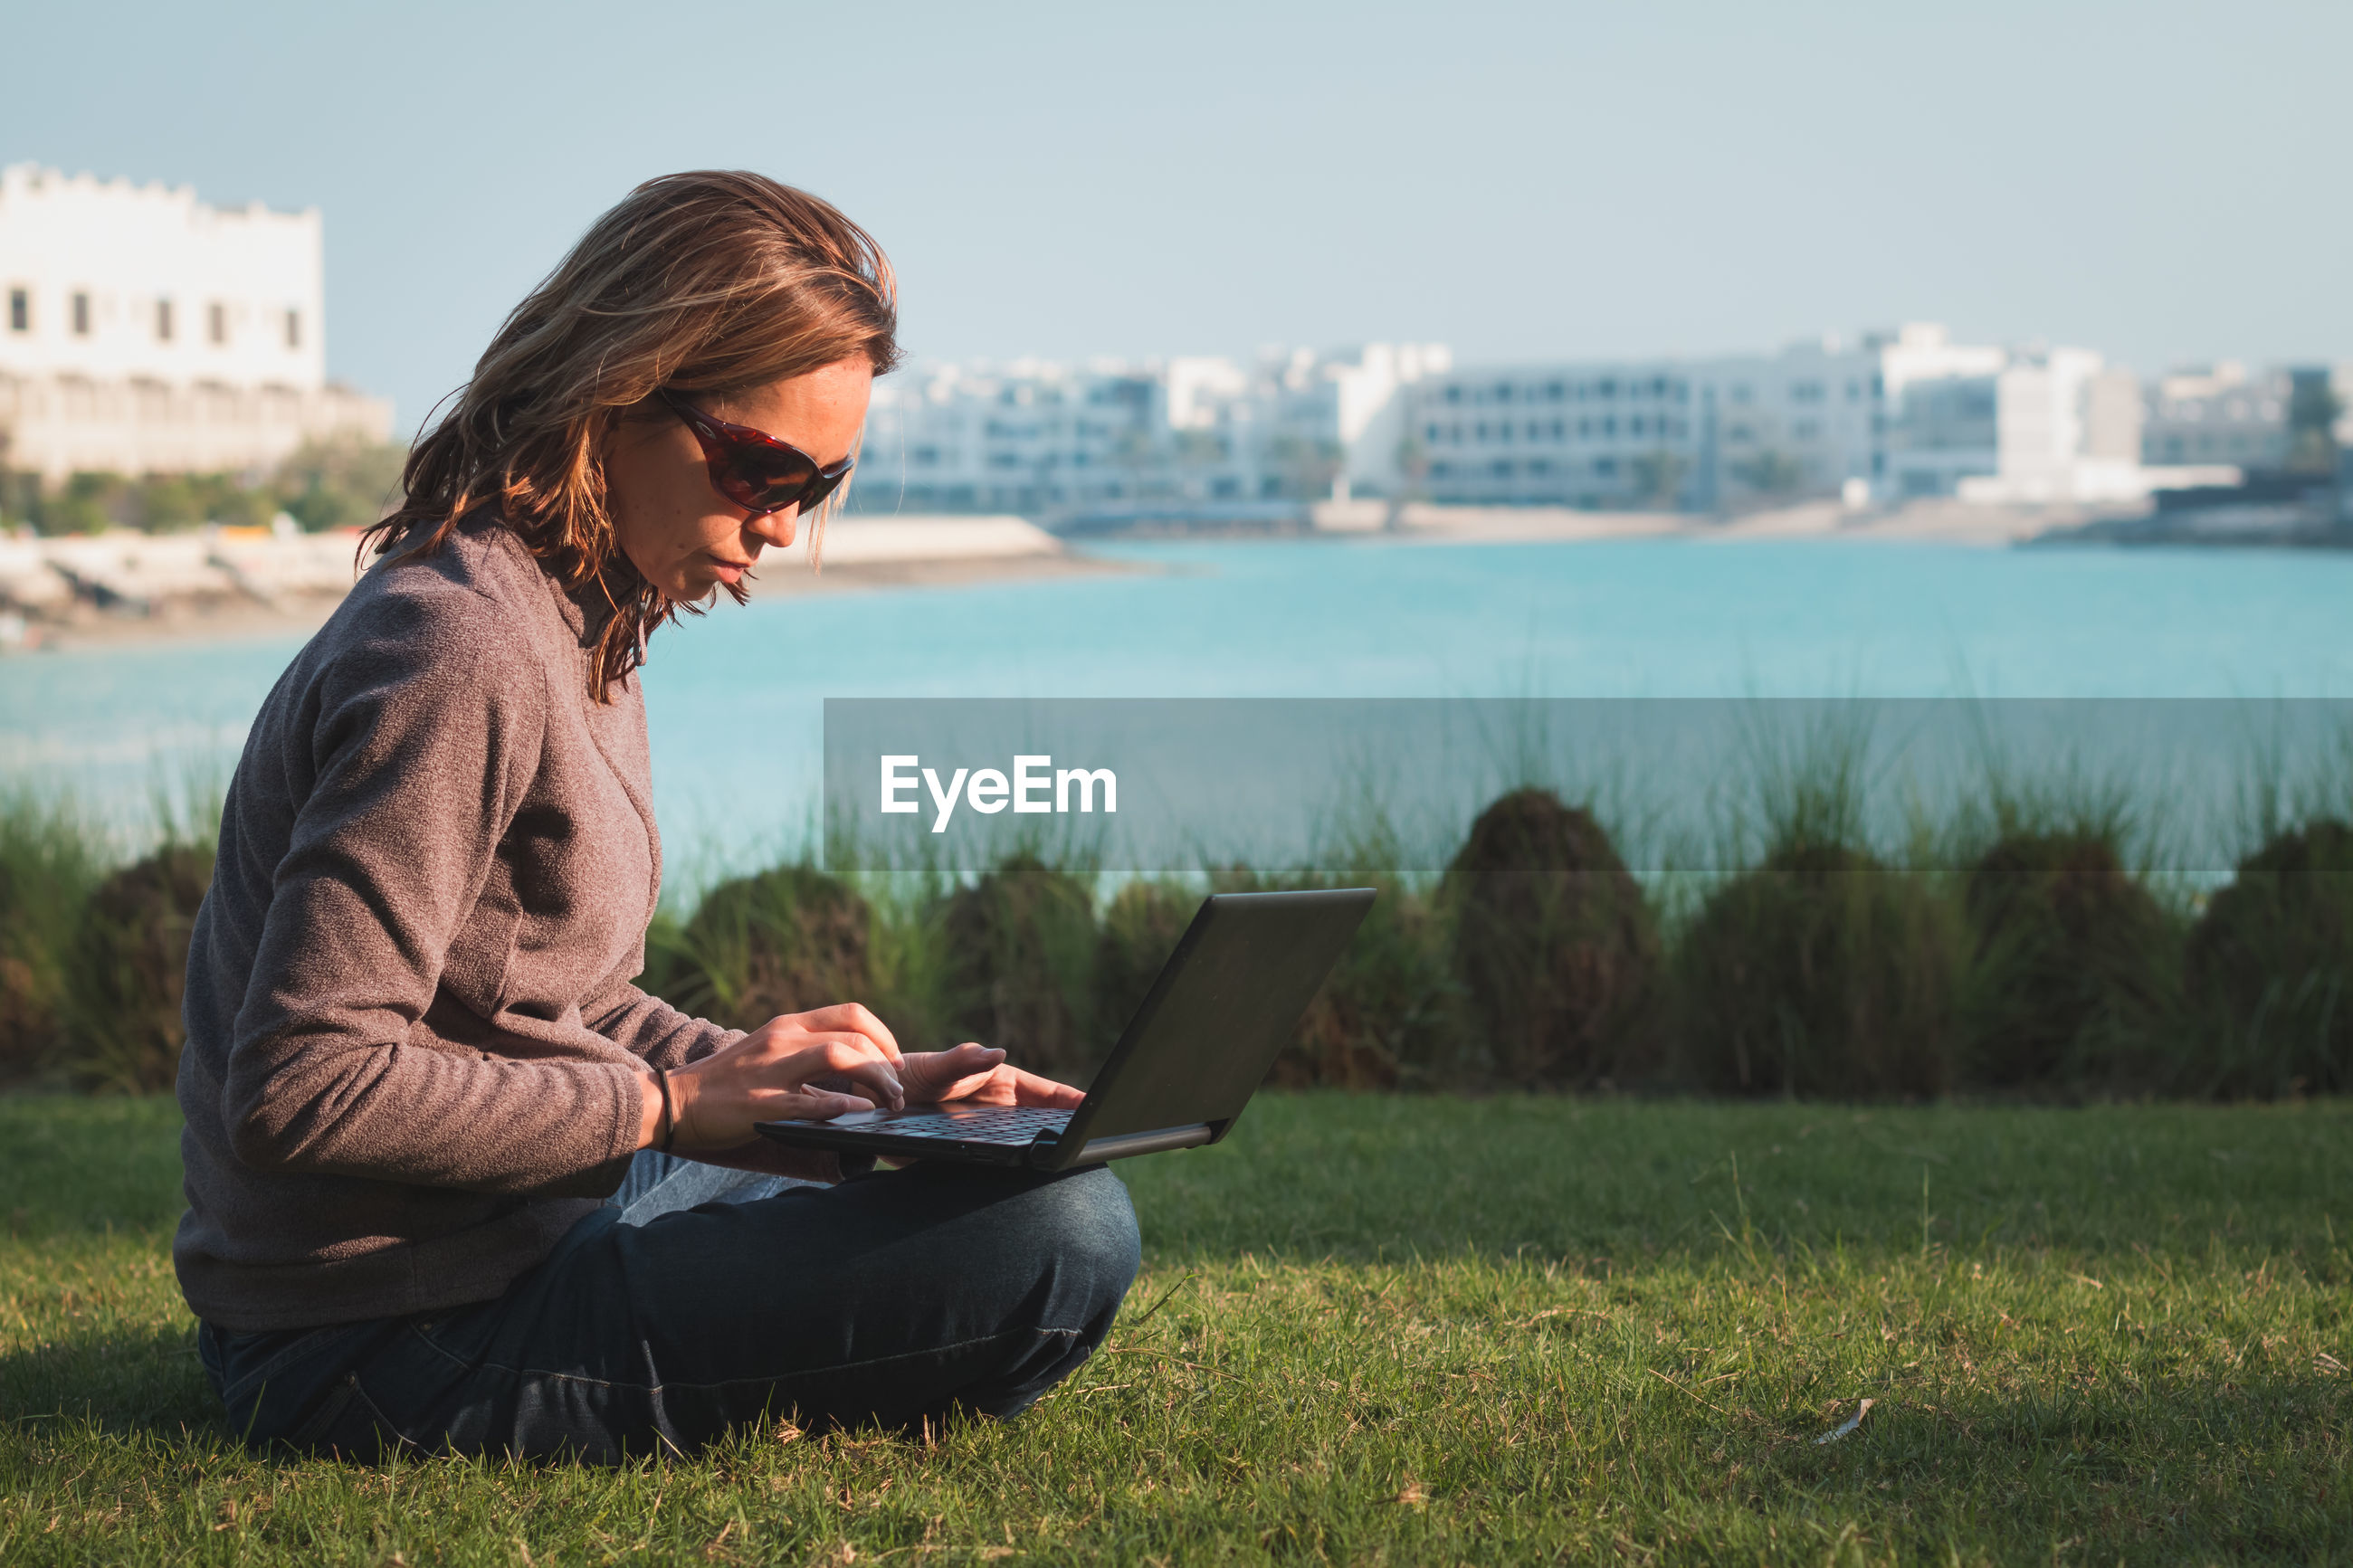 Woman working on laptop while sitting at grassy field against lake